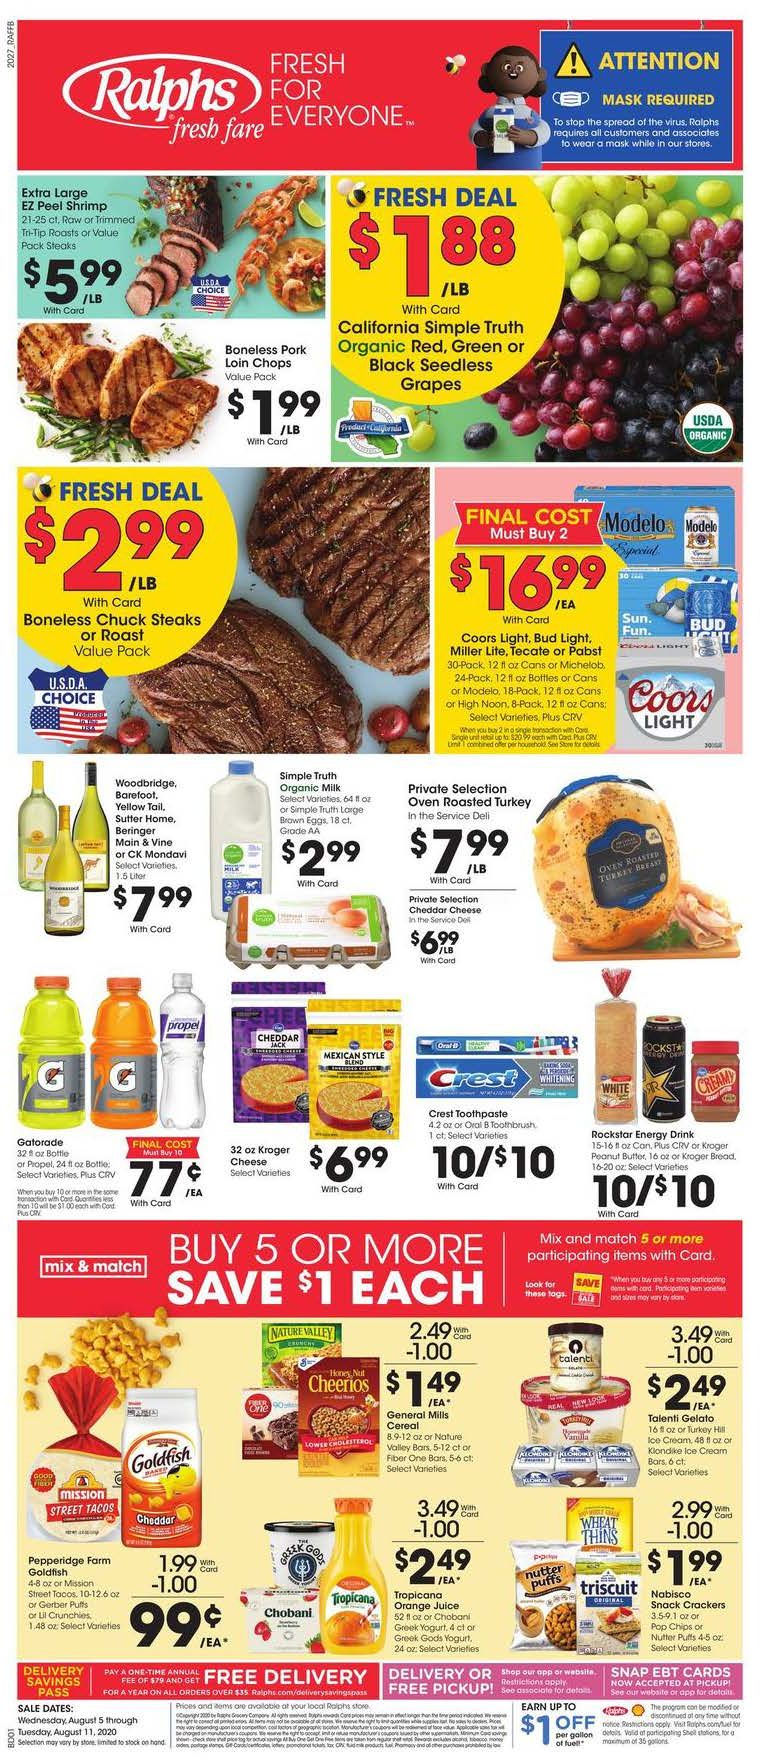 Ralphs August Weekly Ad valid from Aug 5 – 11, 2020